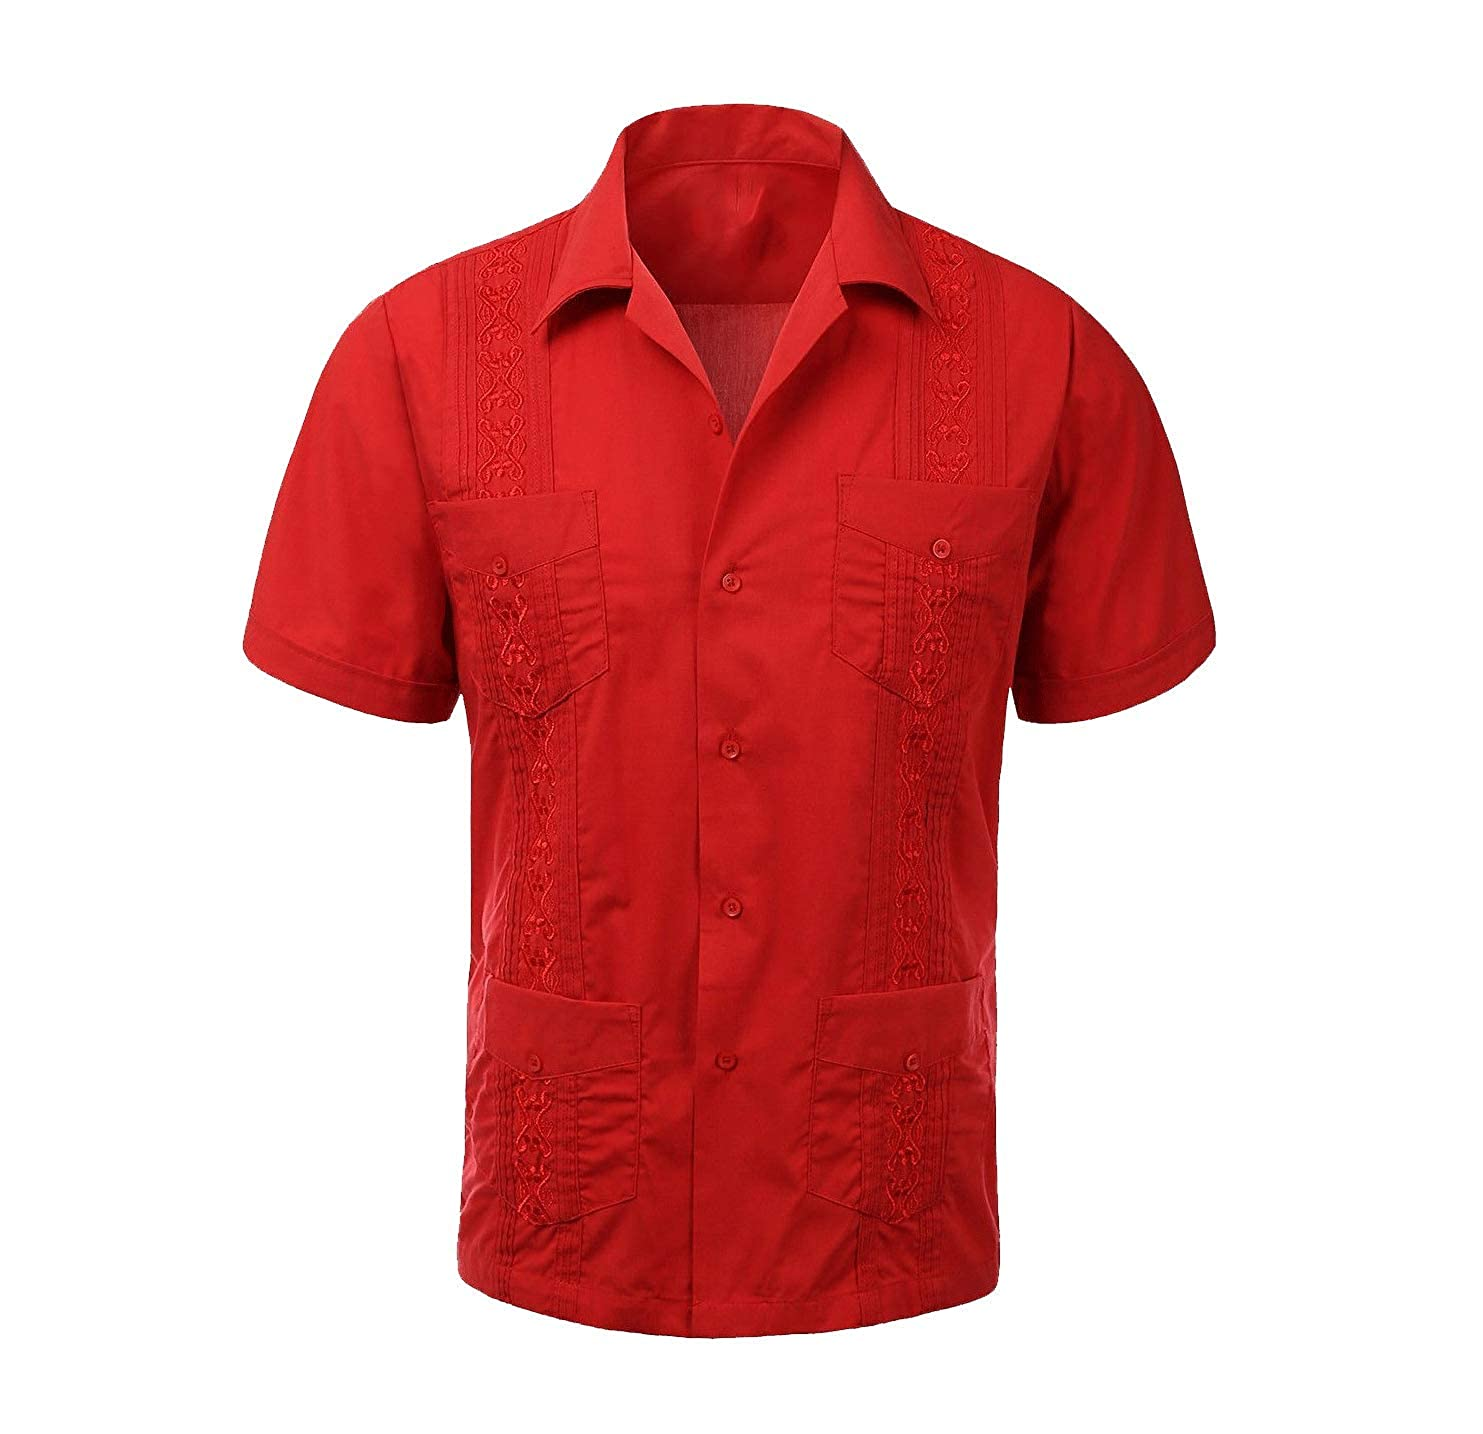 Trend Setters Mens Plus Size Extended Size Red Guayabera Wedding Dress Shirt